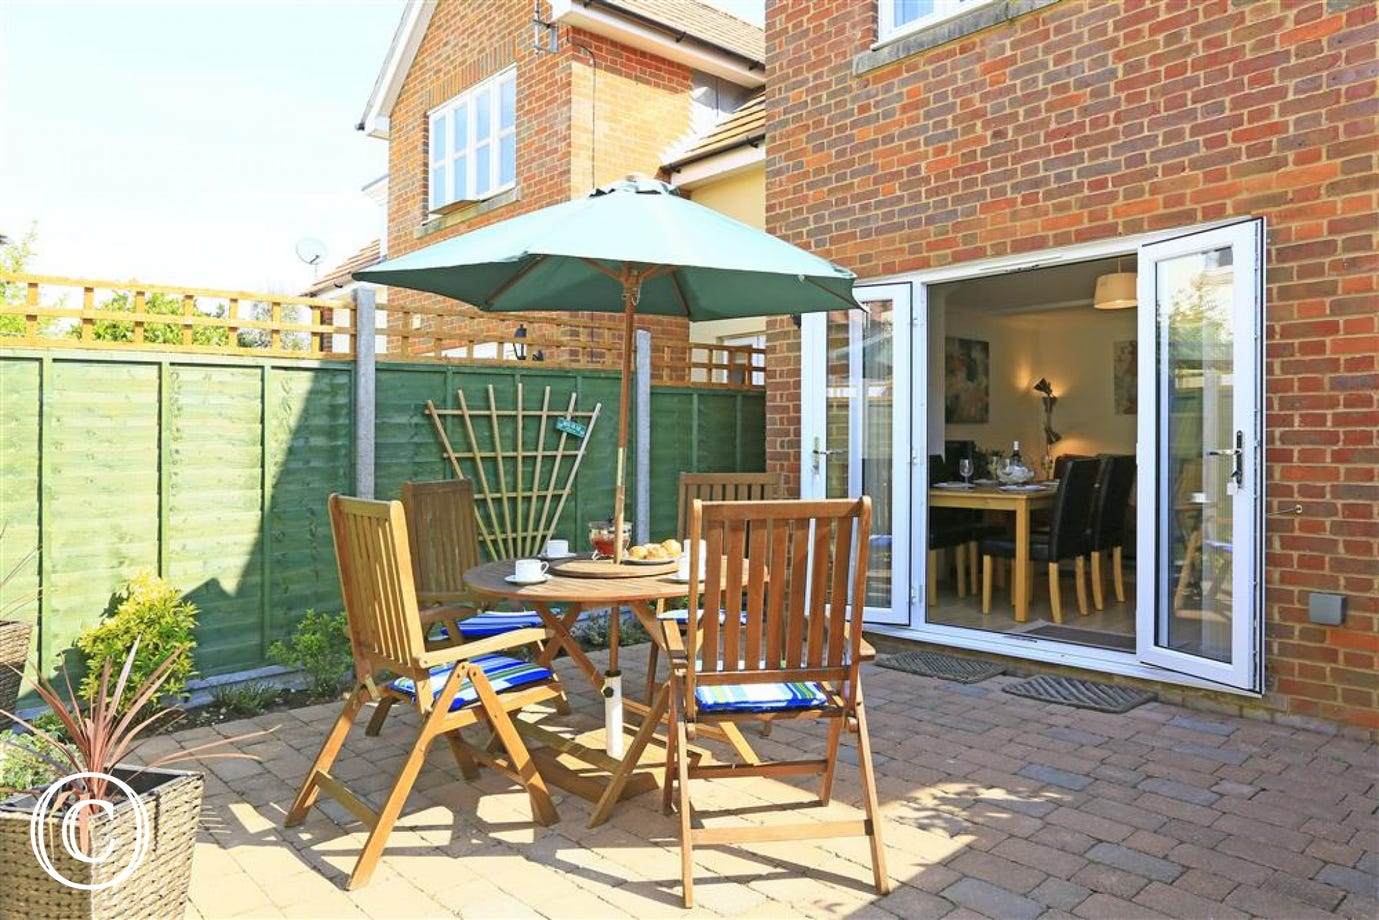 This fenced garden area is ideal for relaxing during the warm summer sun. Put up the parasol and enjoy this area at its best.